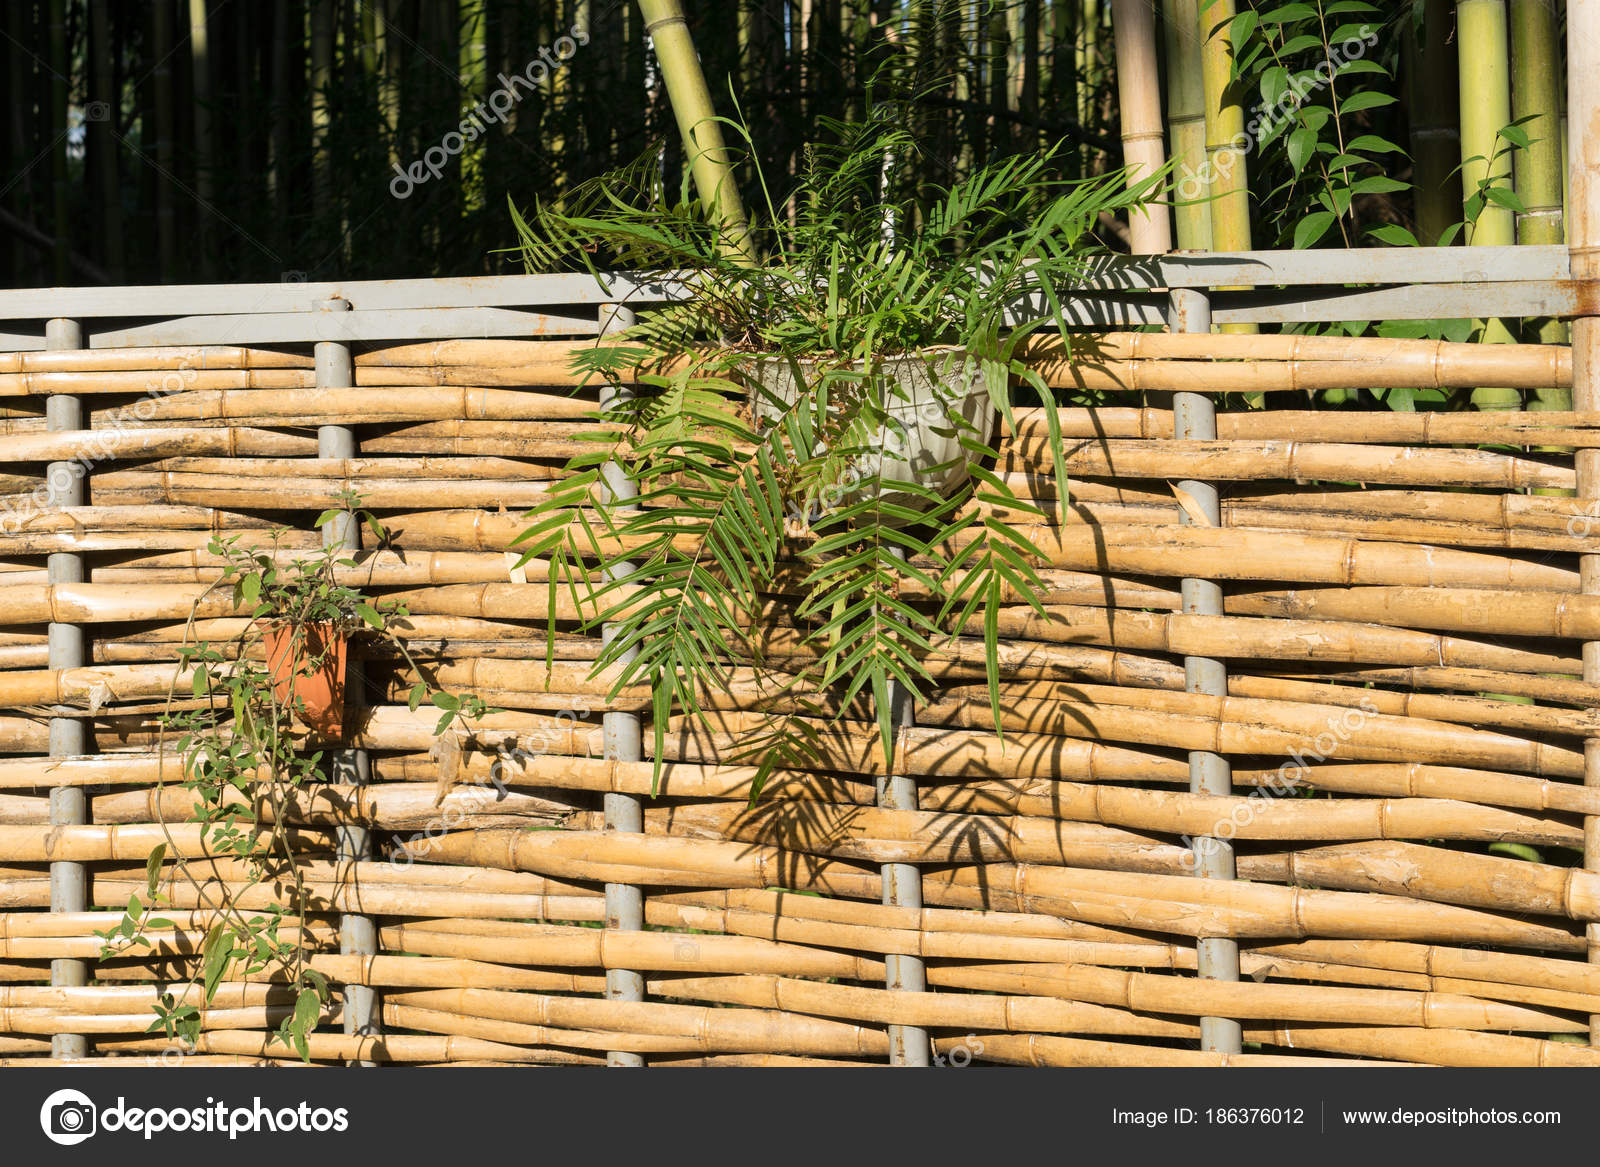 Fence Bamboo Weave Hanging Baskets Flowers Stock Photo C Vvicca 186376012